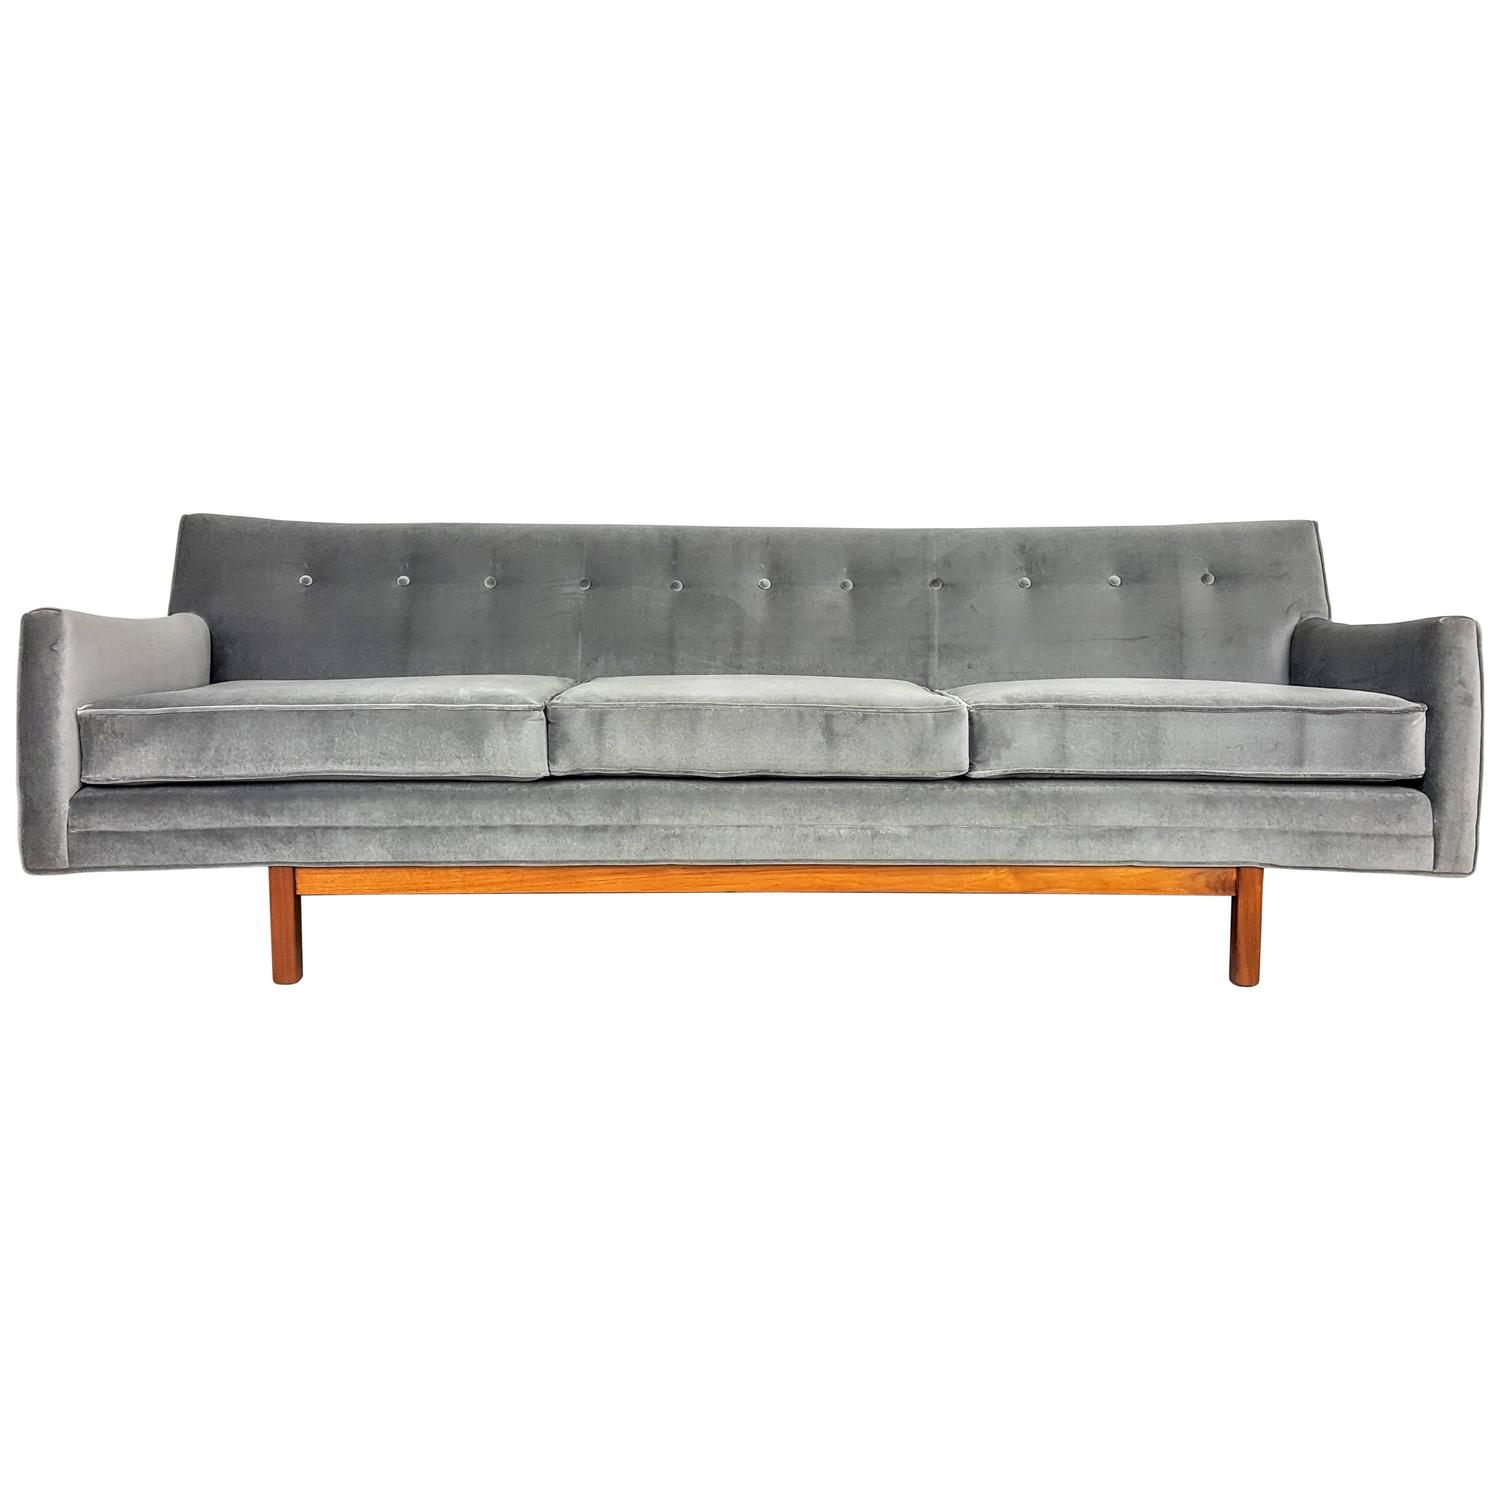 Floating Mid Century Modern Sofa By Jens Risom 1950s At